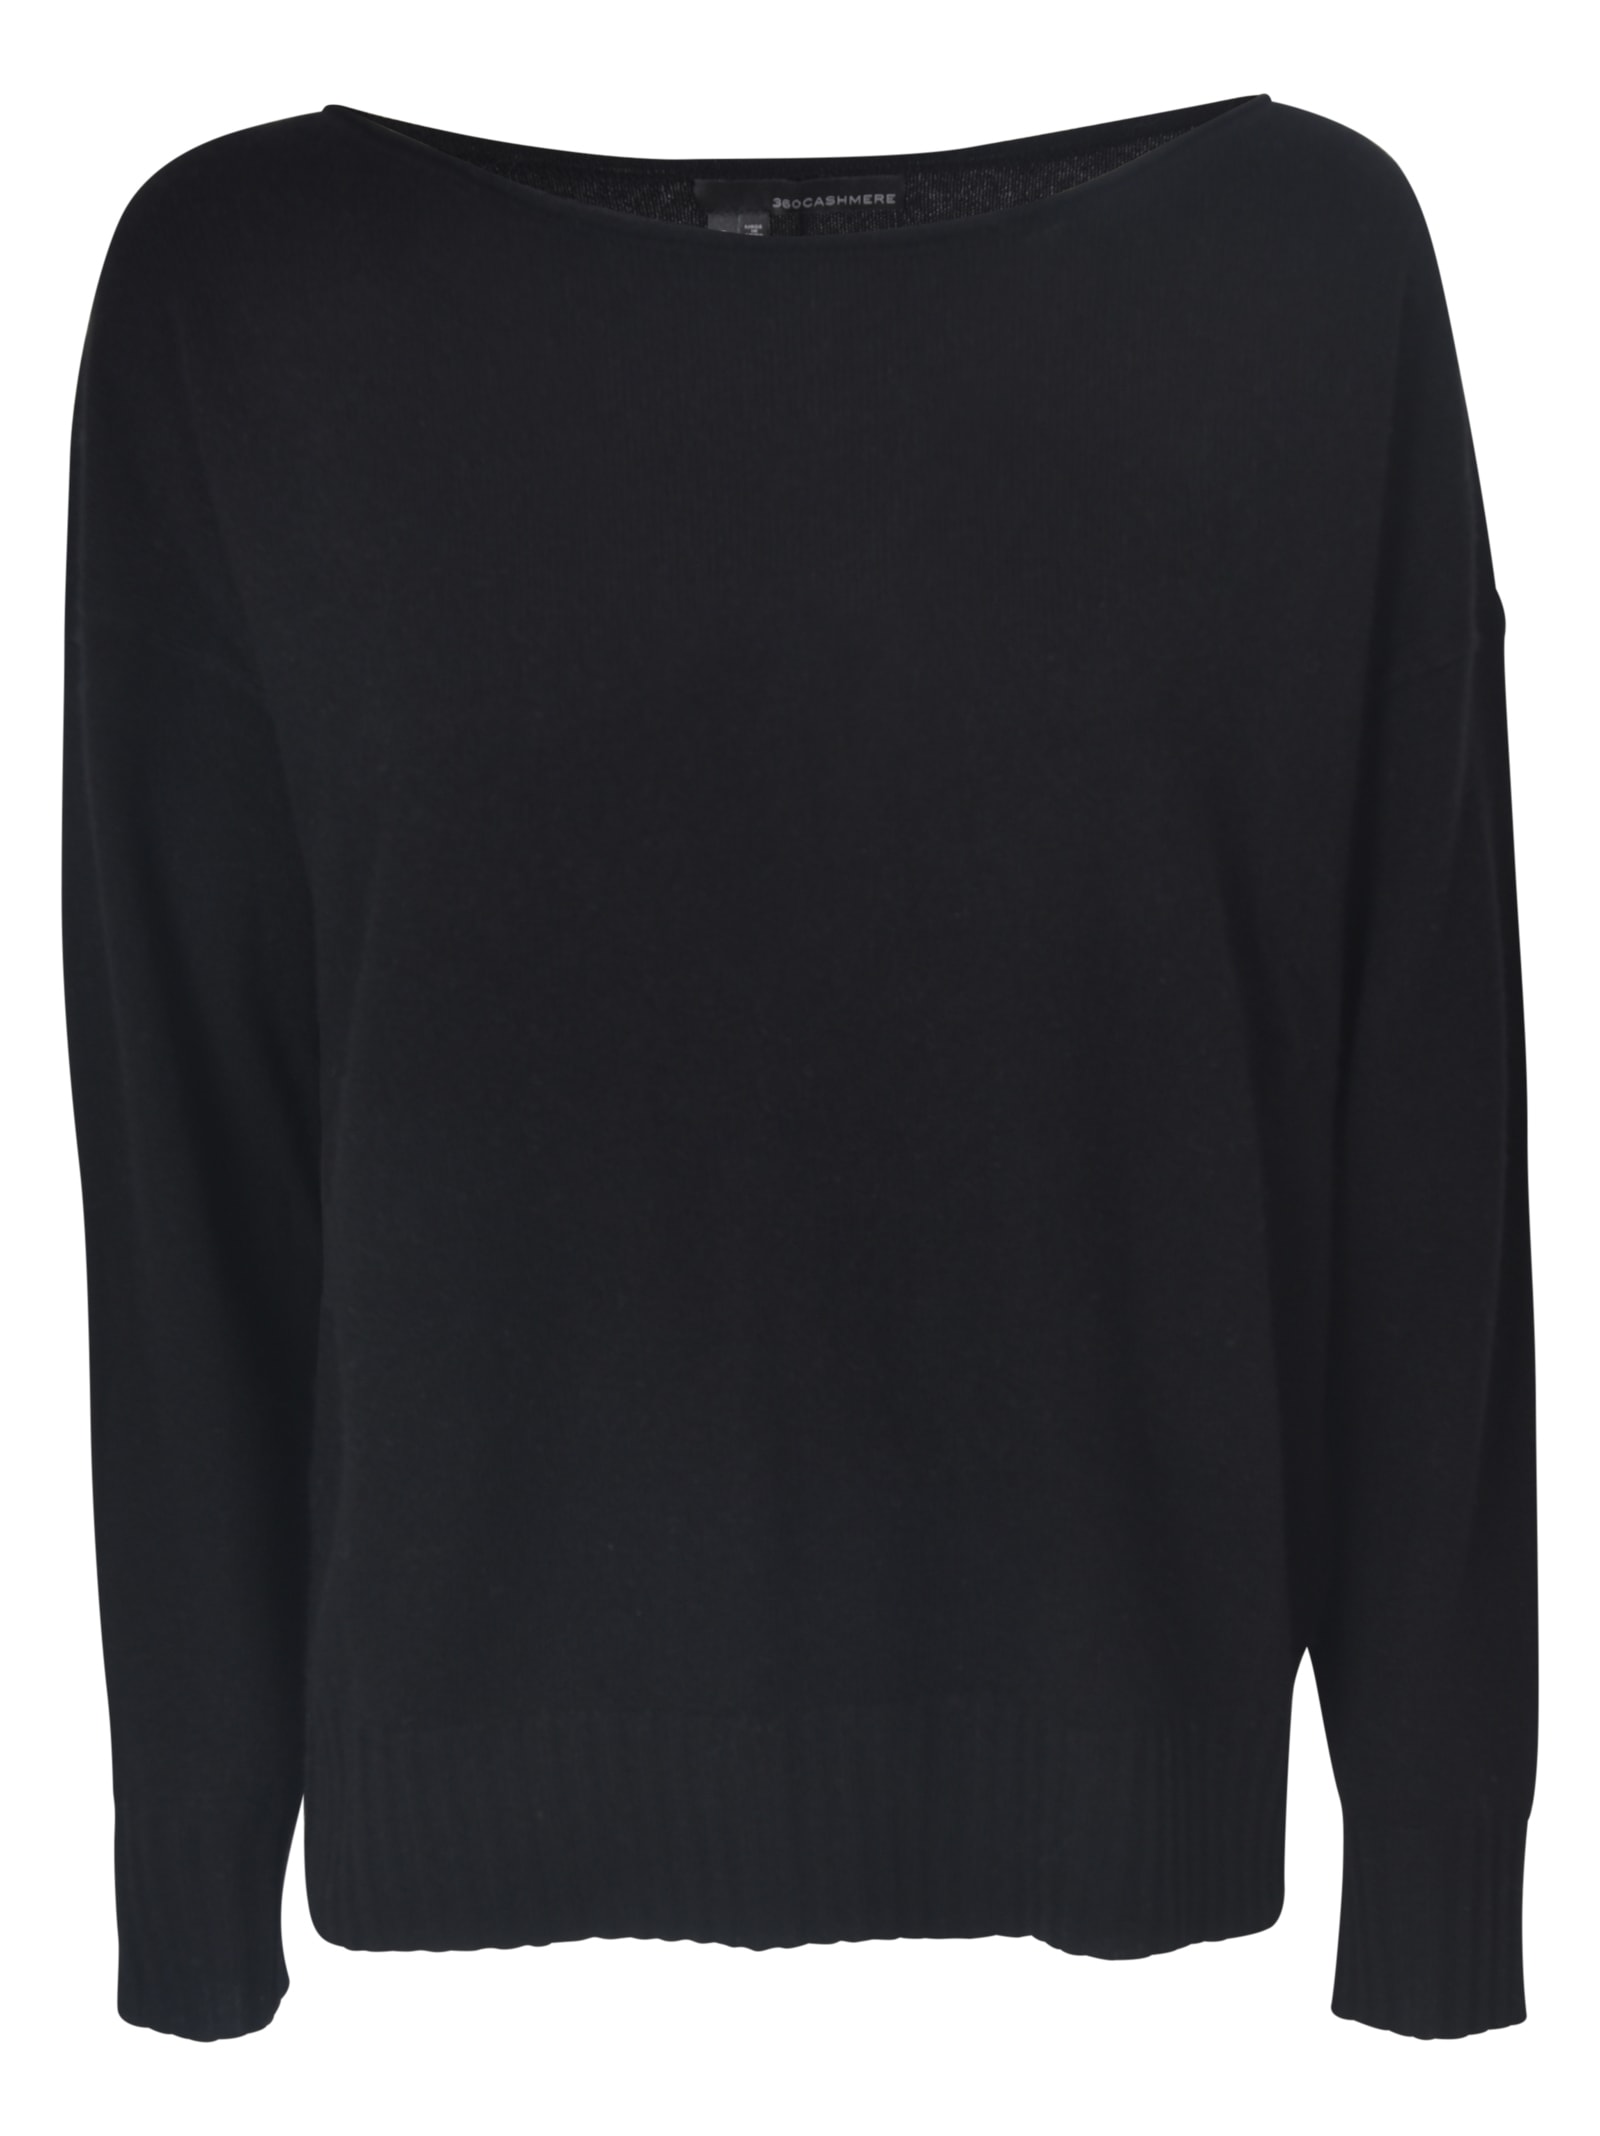 360 Sweater Wide Neck Ribbed Sweater